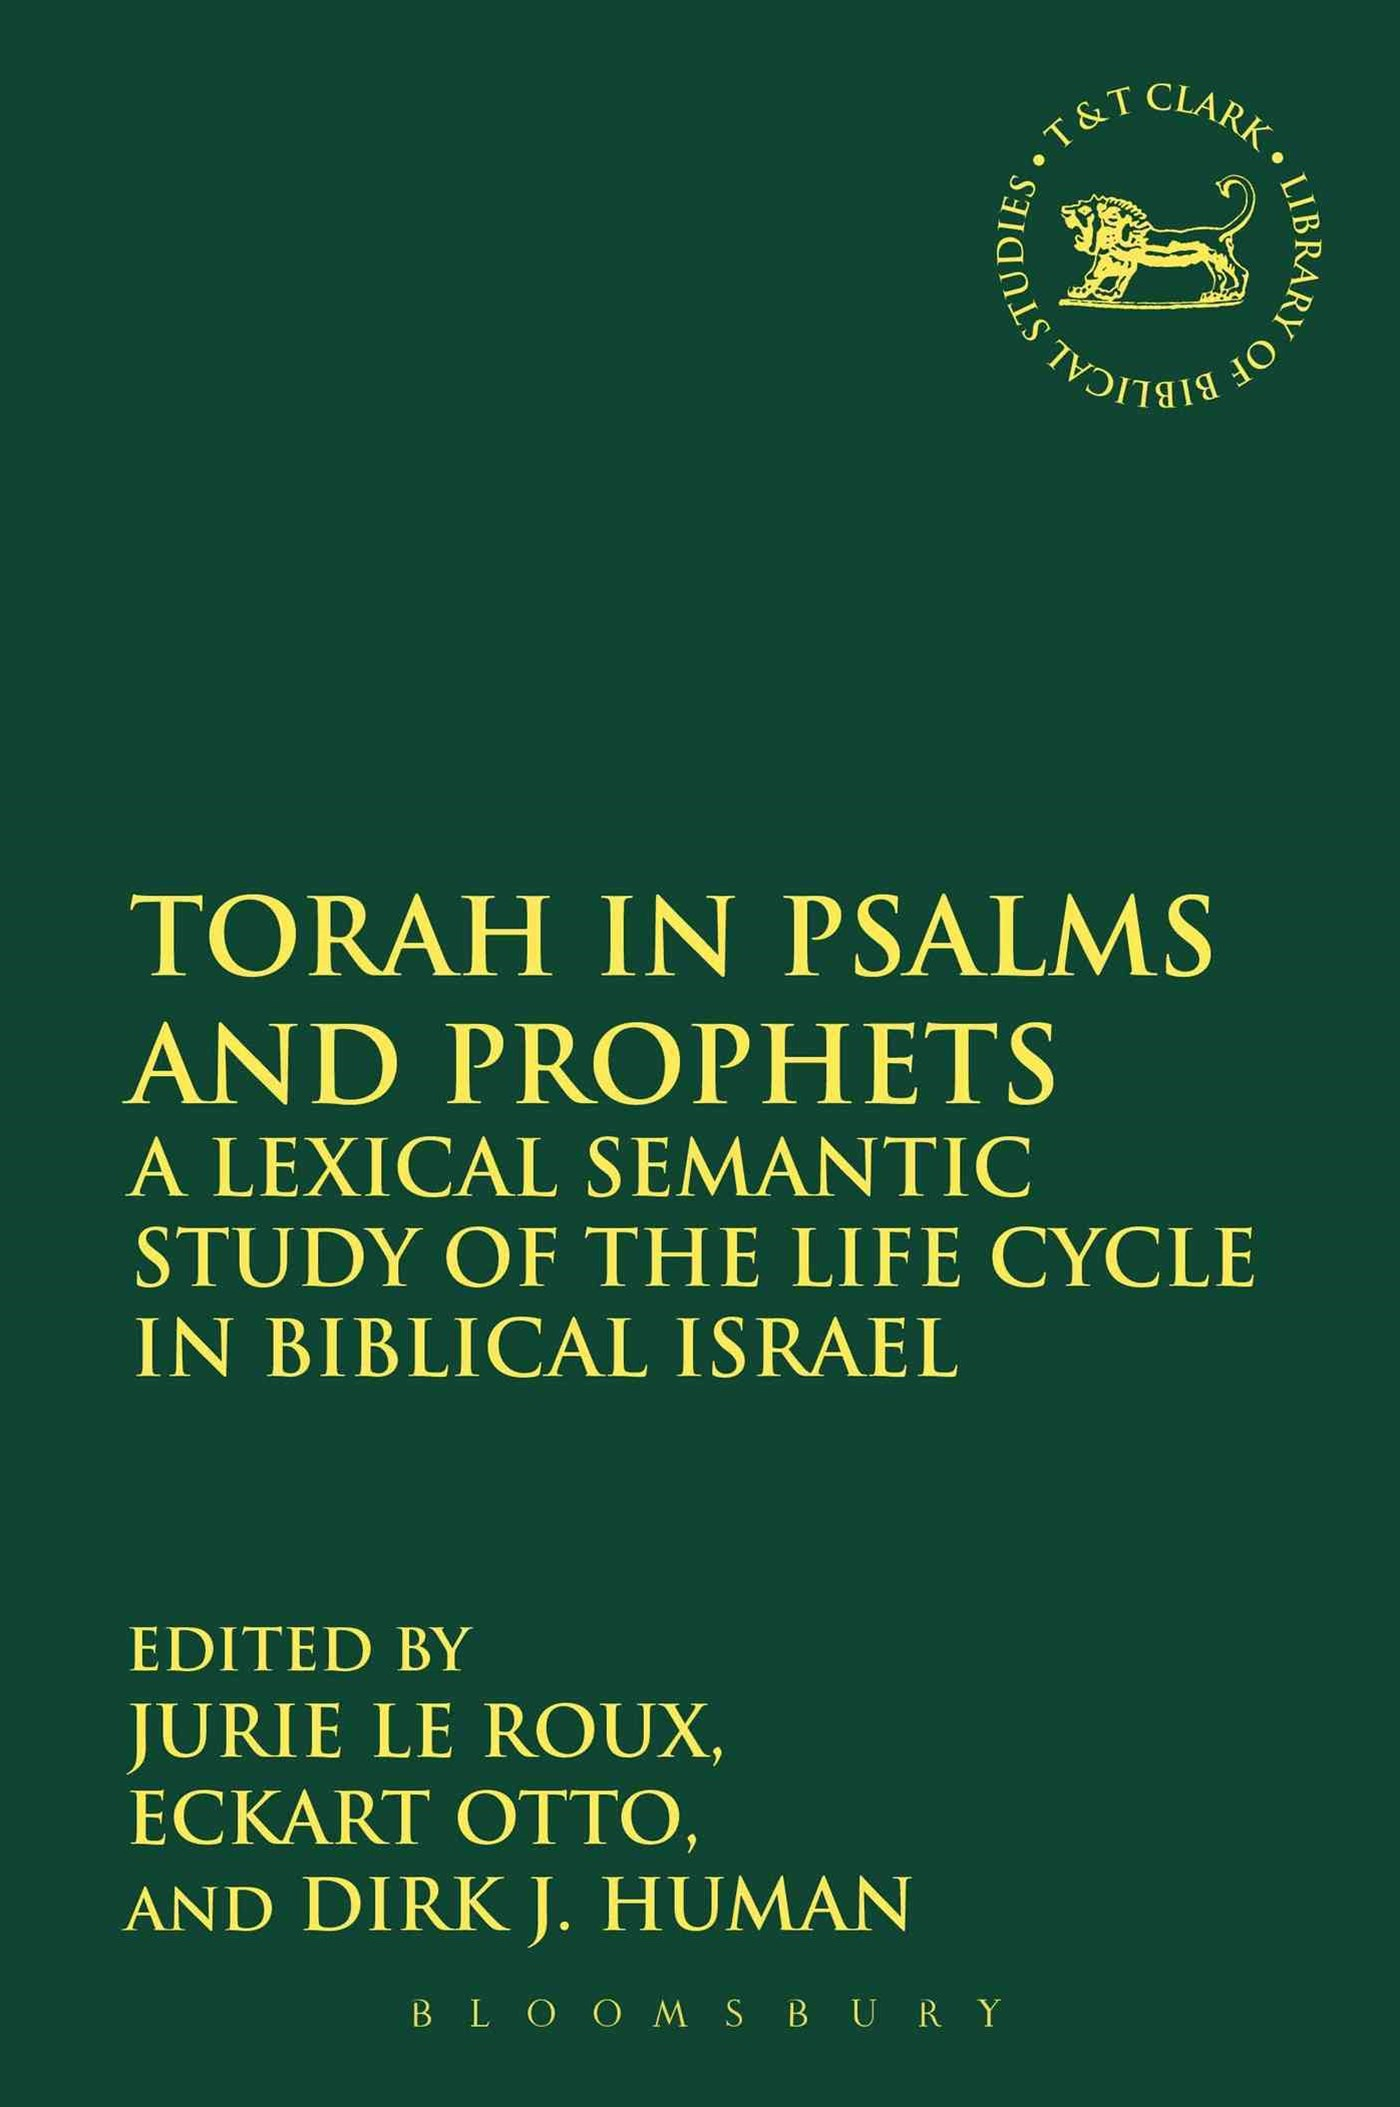 Torah in Psalms and Prophets